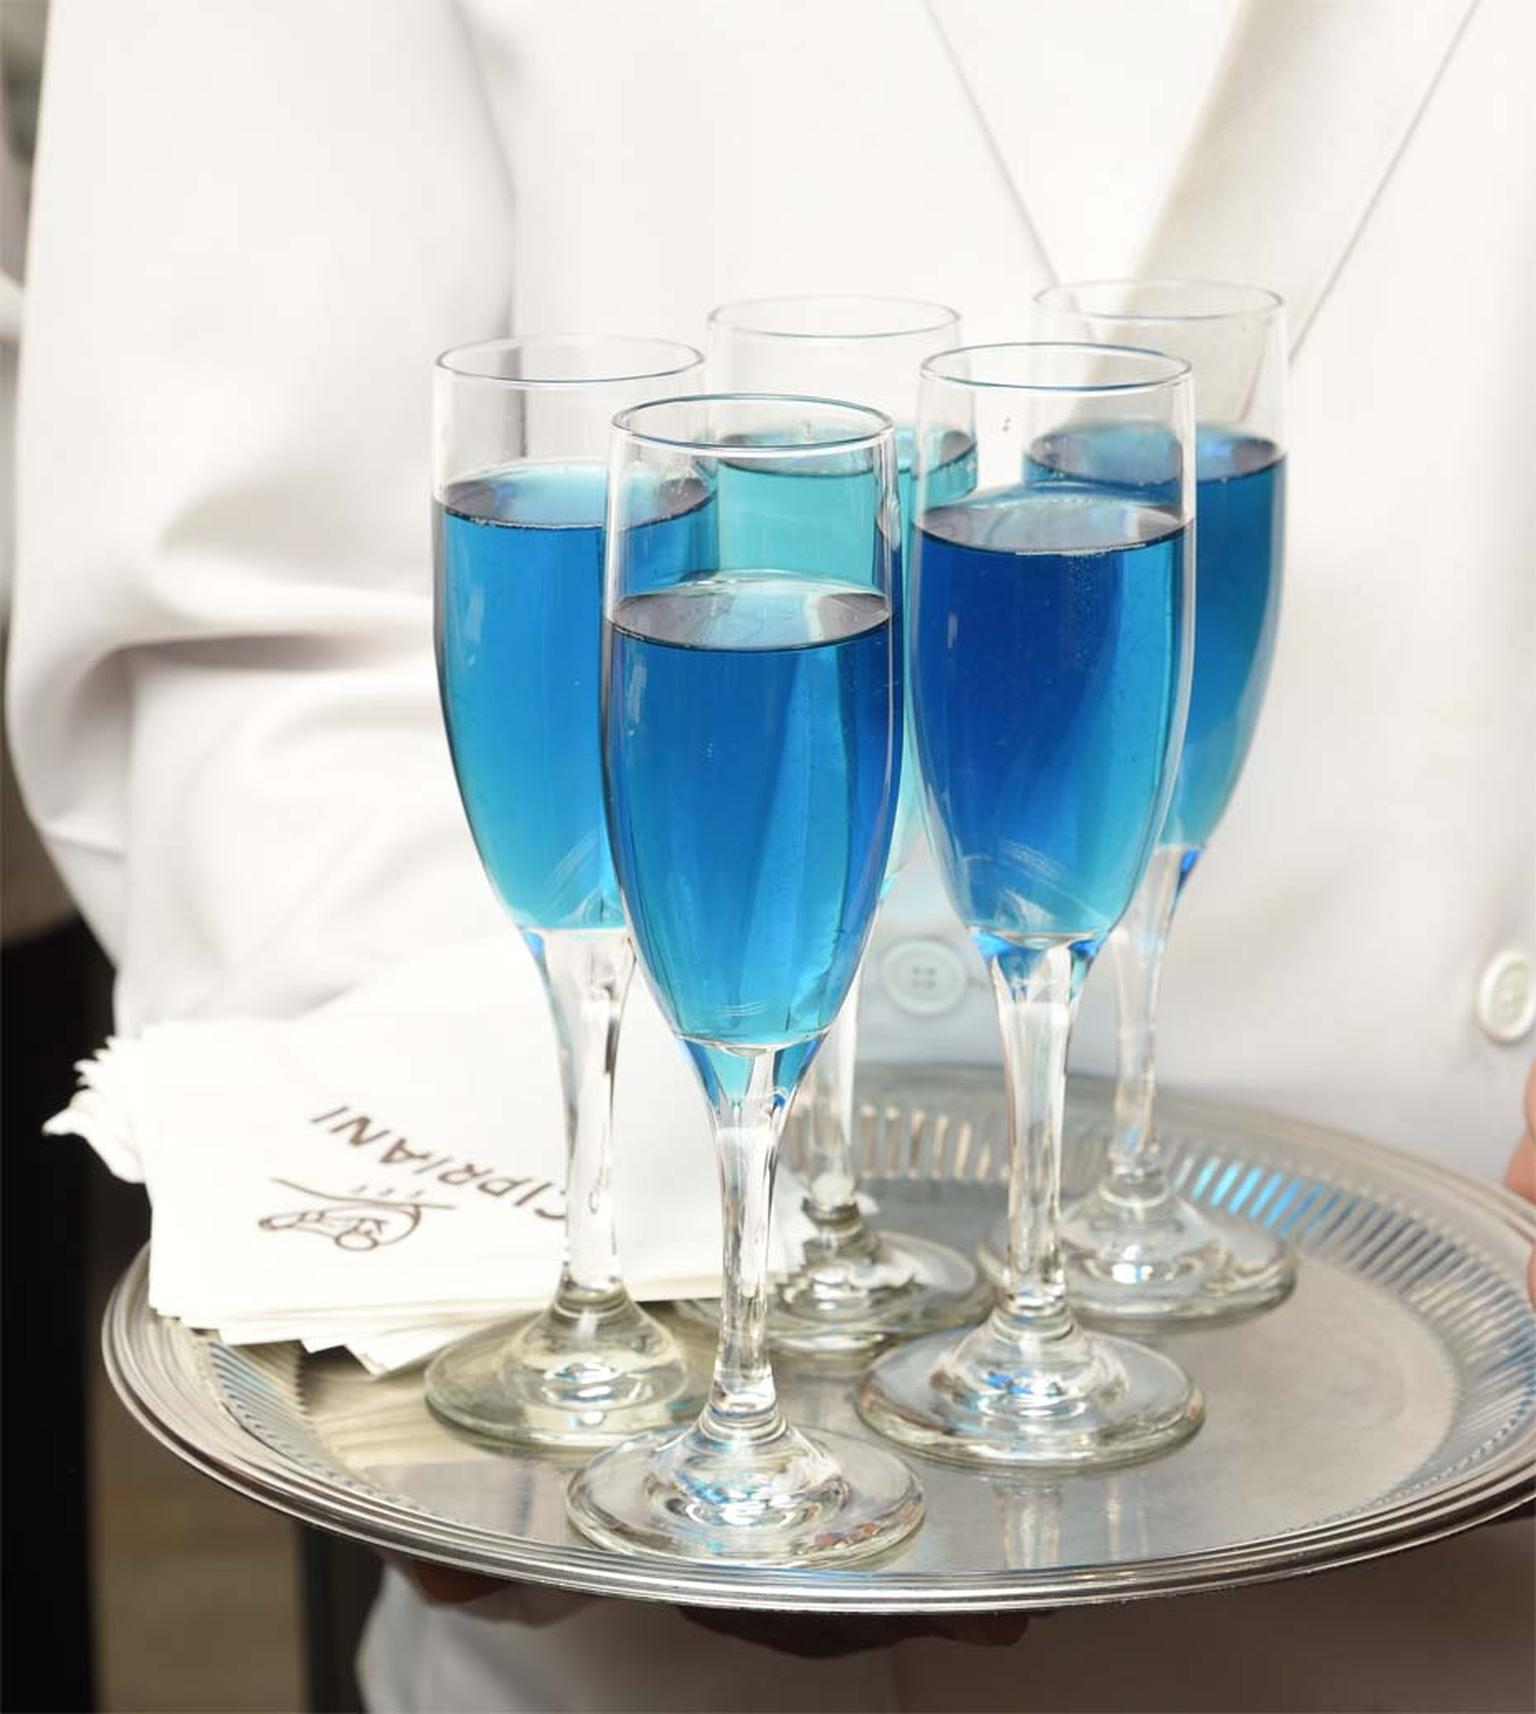 The atmosphere was Timeless Blue at the opening of Buccellati's flagship store in New York.